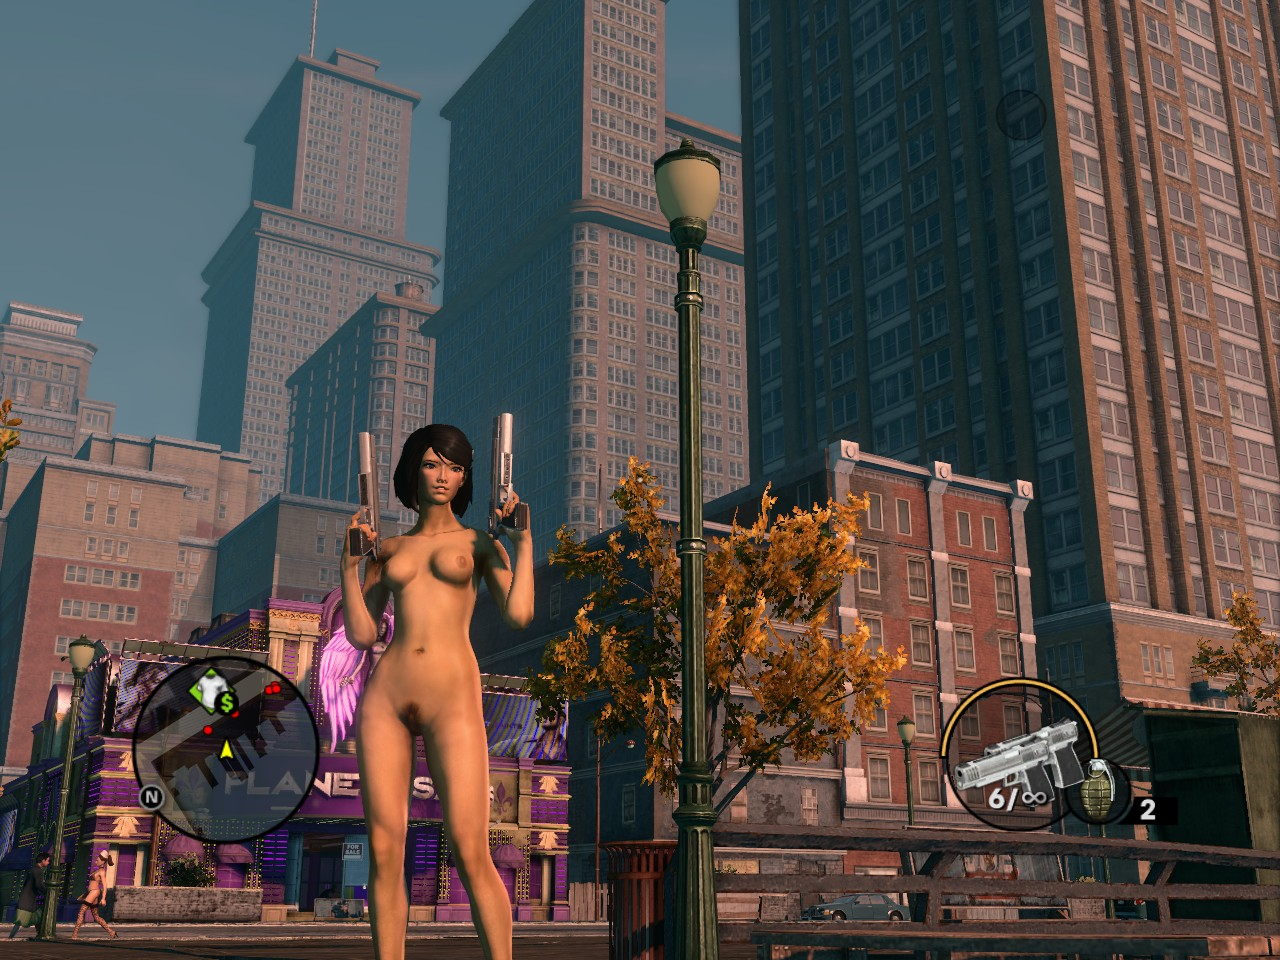 Saints row 4 nude mod download for  naked clips